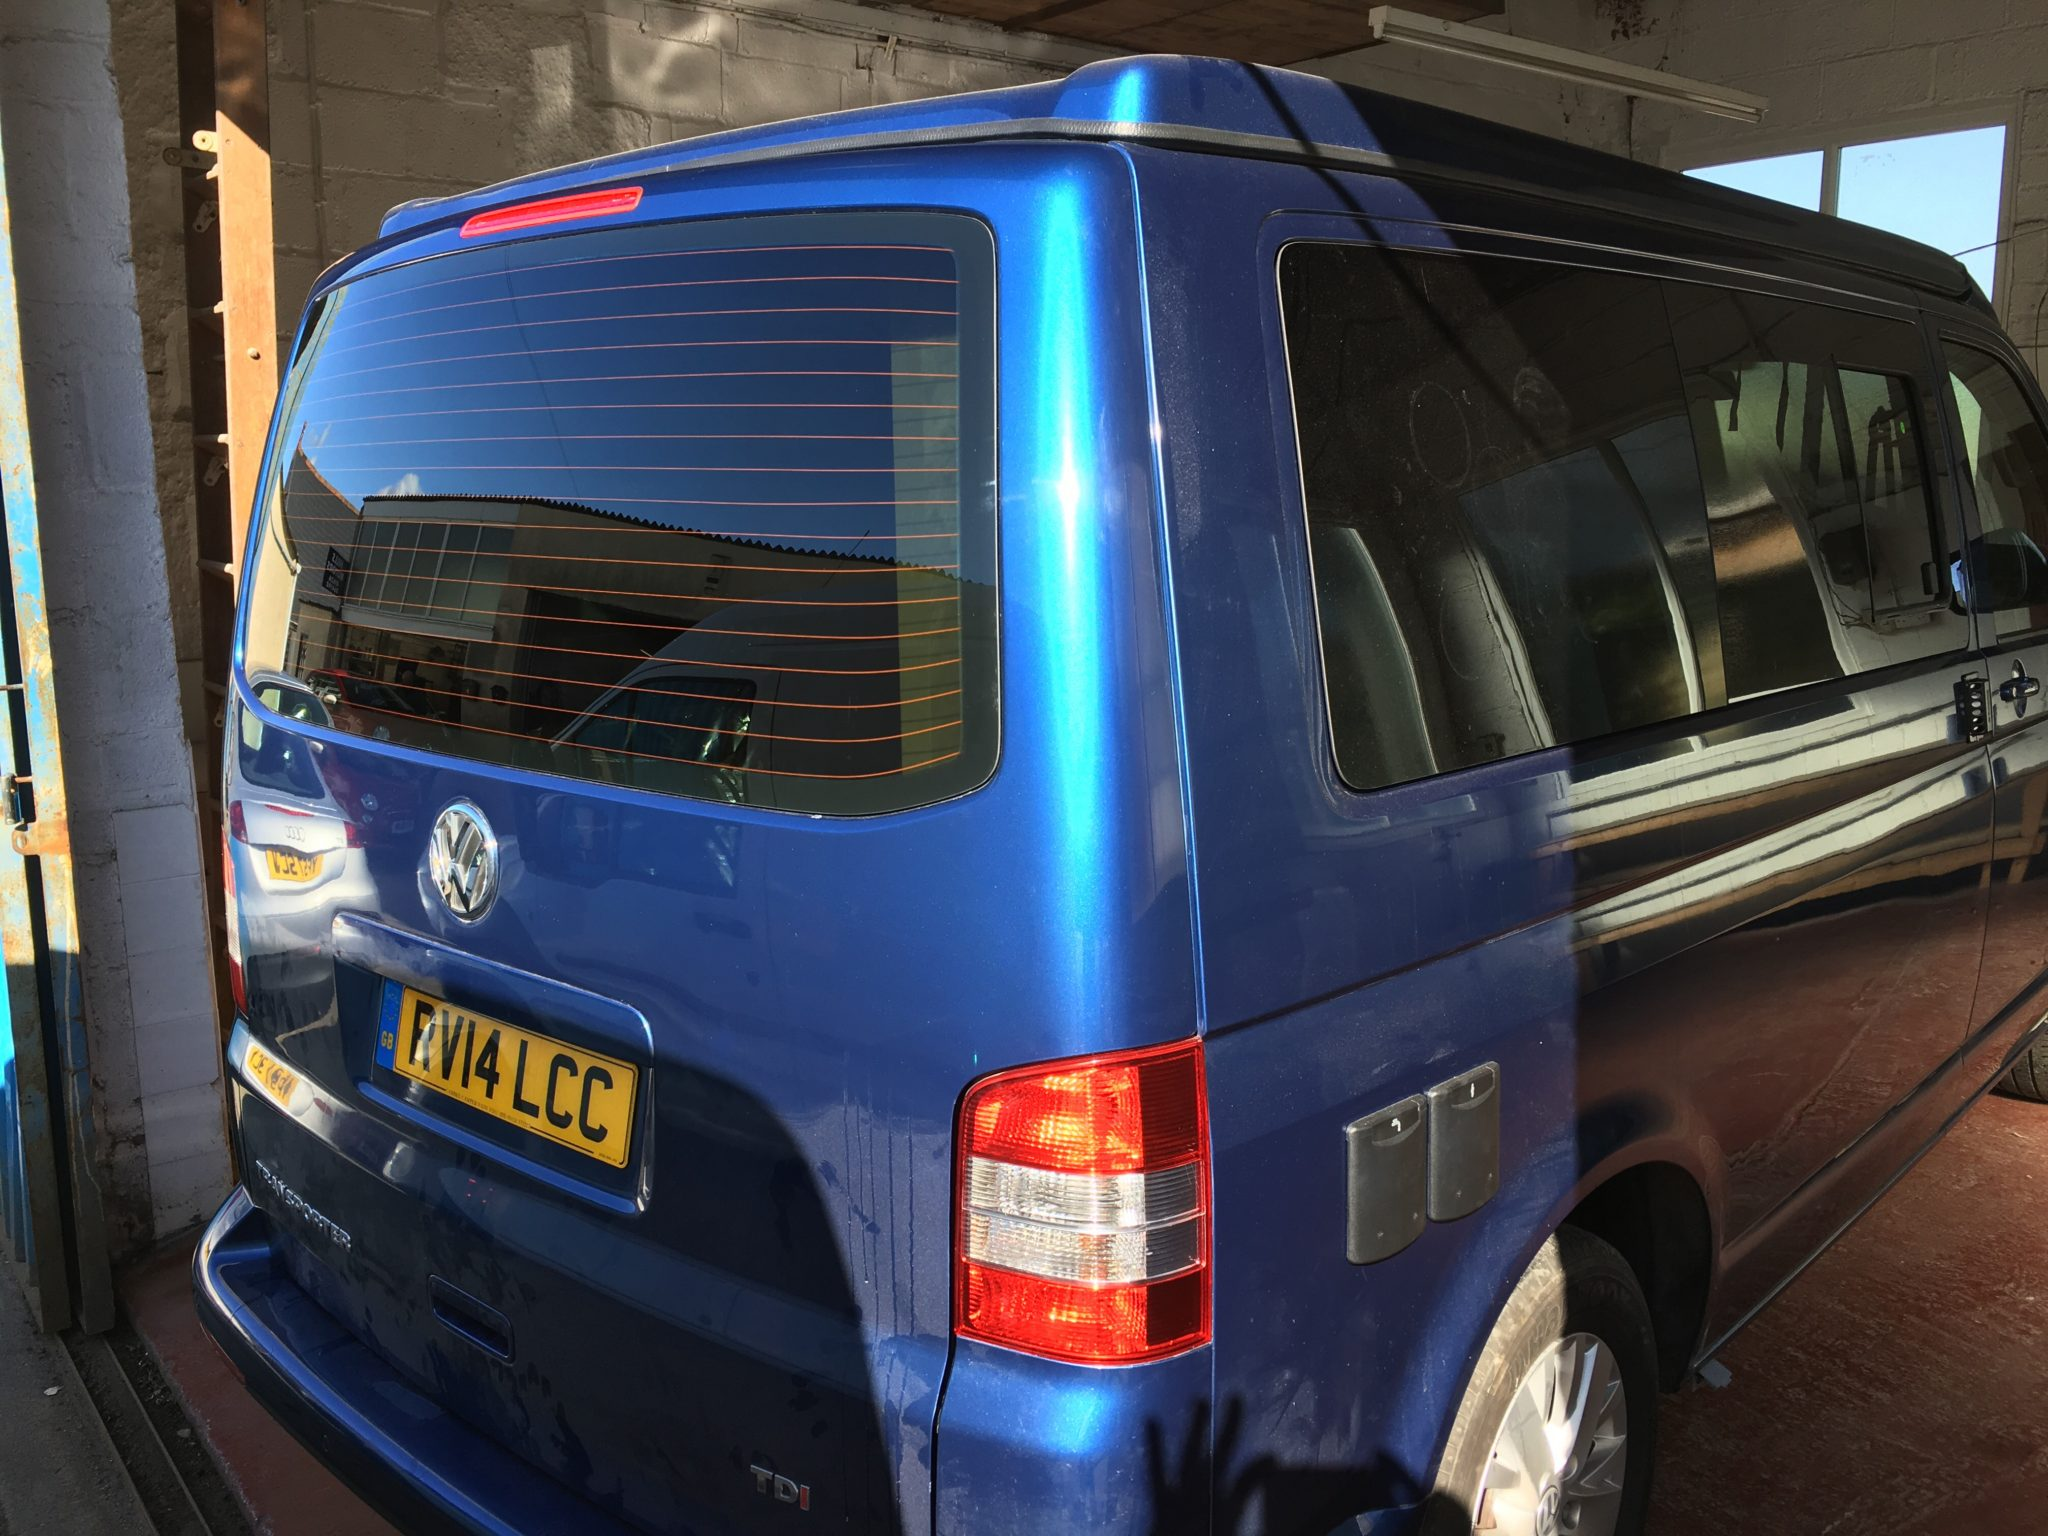 VW Caravelle Rear Window Tint